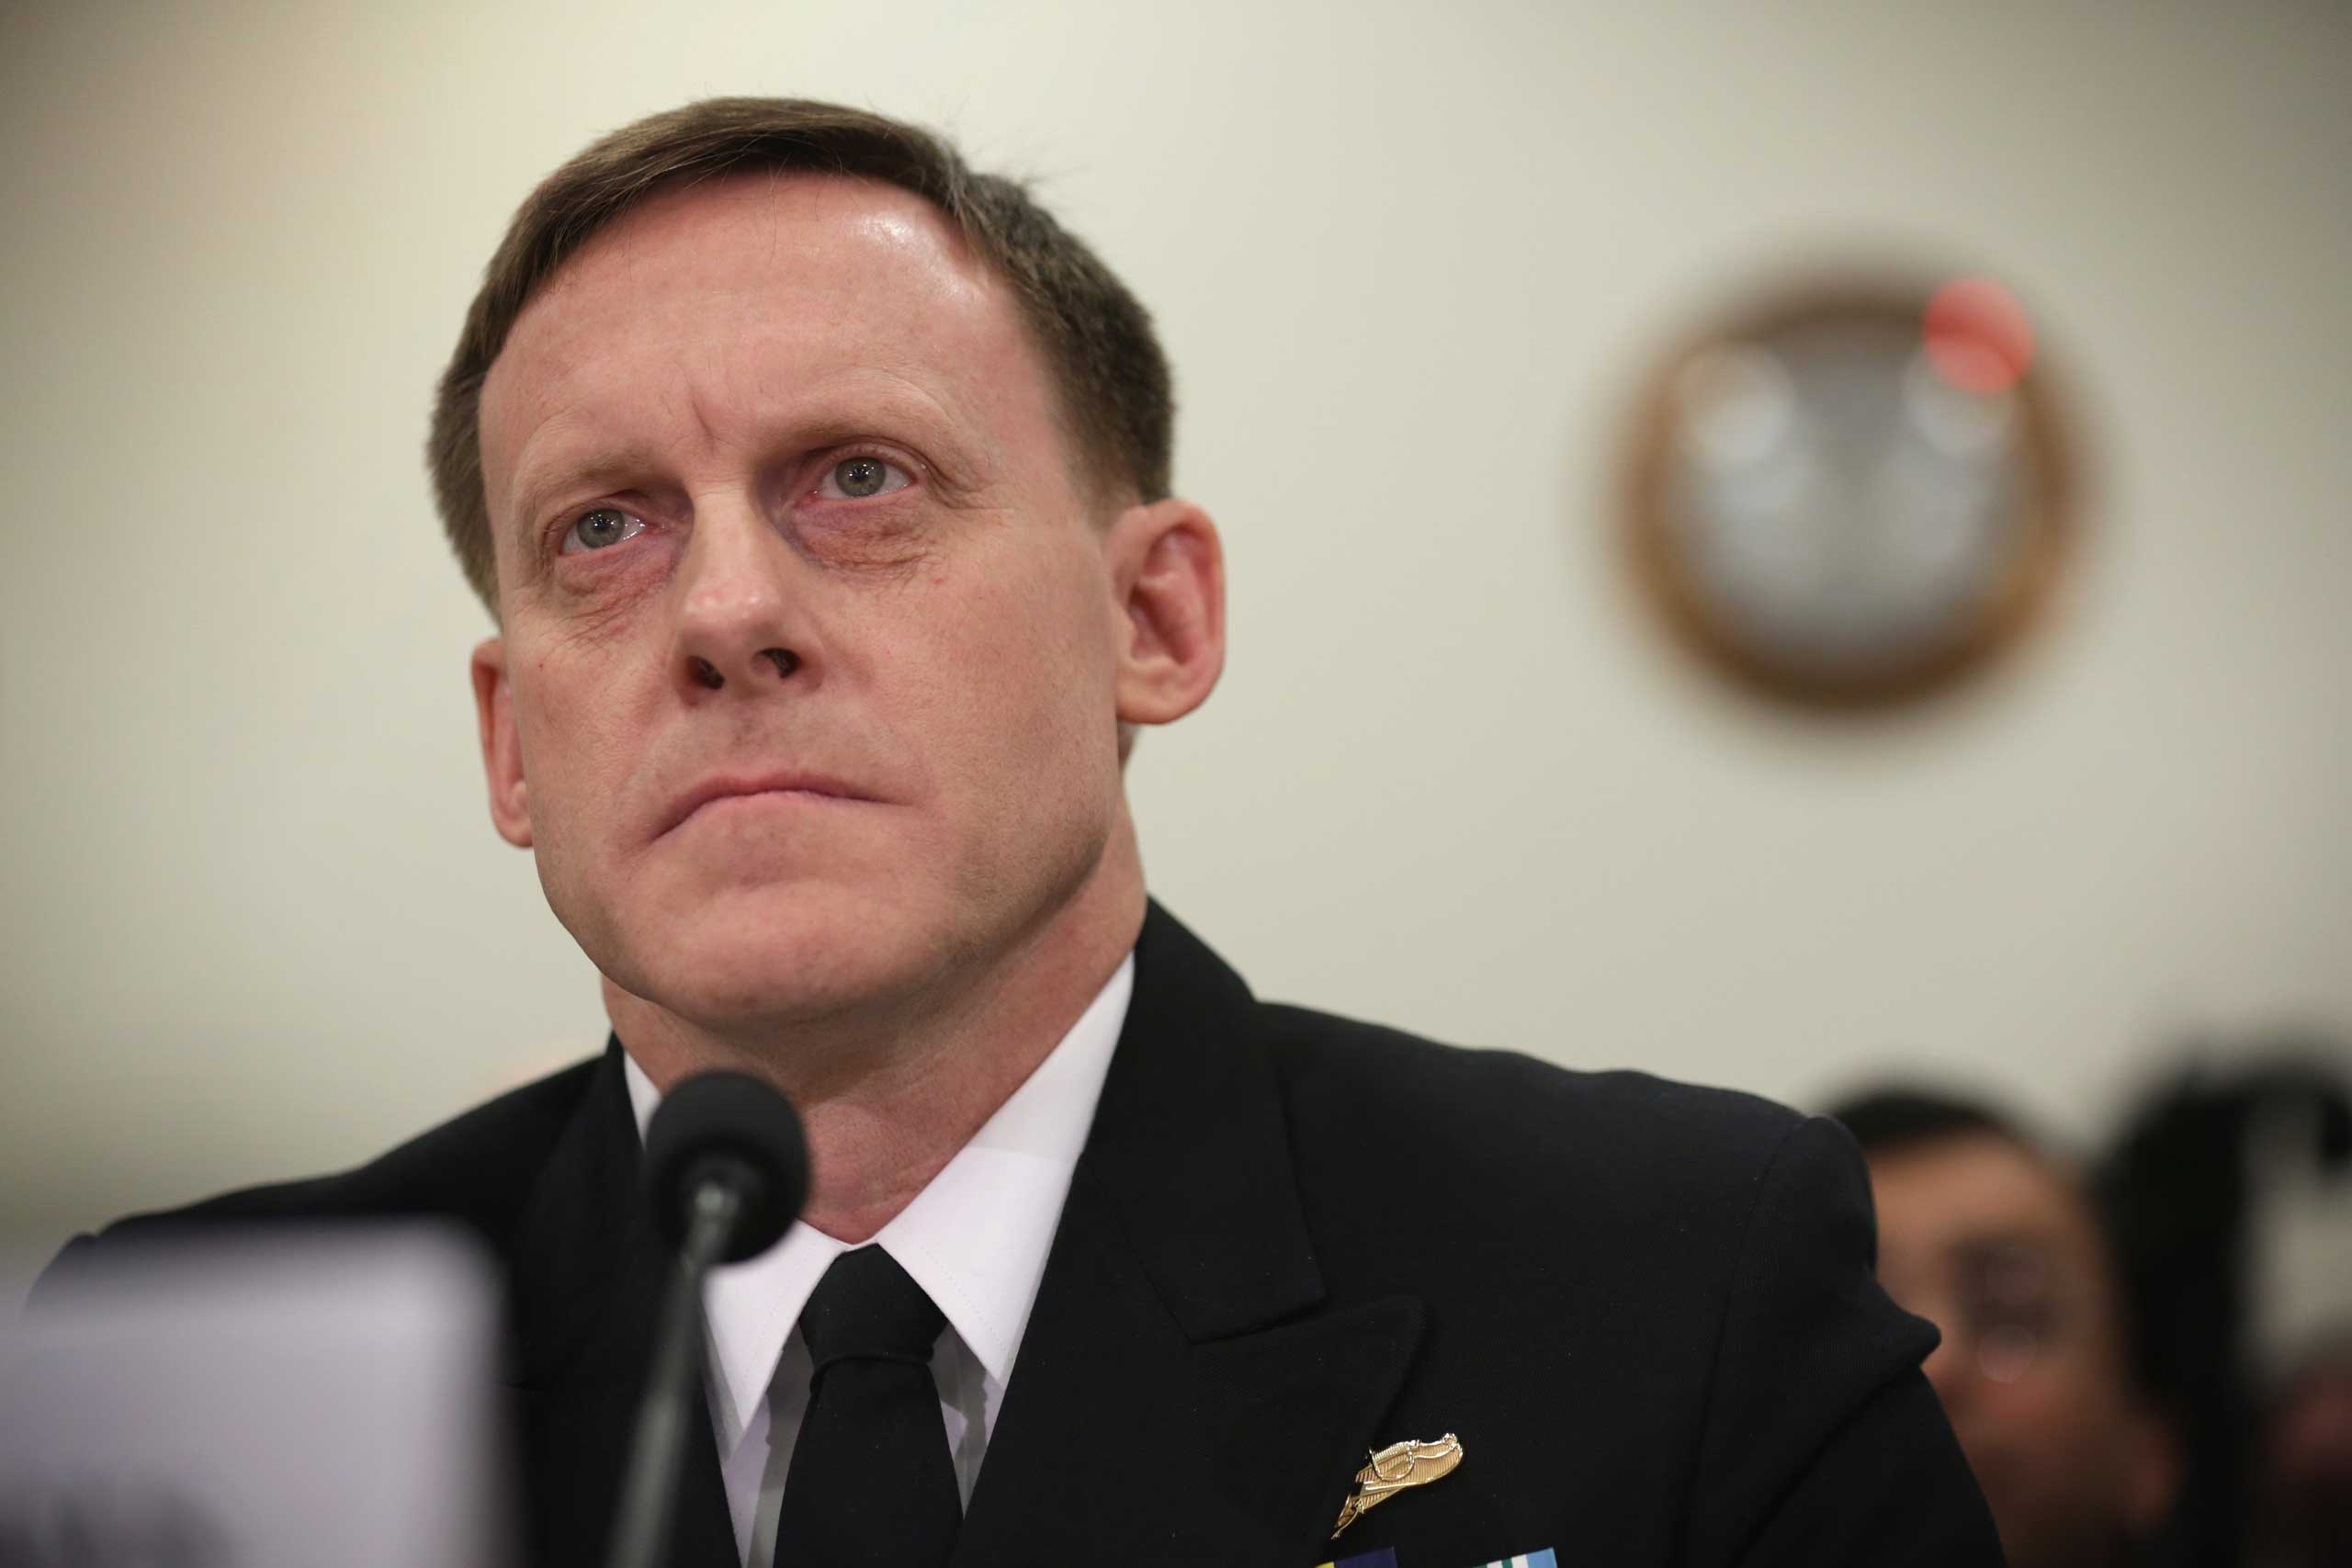 Adm. Michael Rogers, commander of the U.S. Cyber Command and director of the National Security Agency, testifies during a hearing before the House (Select) Intelligence Committee Nov. 20, 2014 on Capitol Hill in Washington, DC.